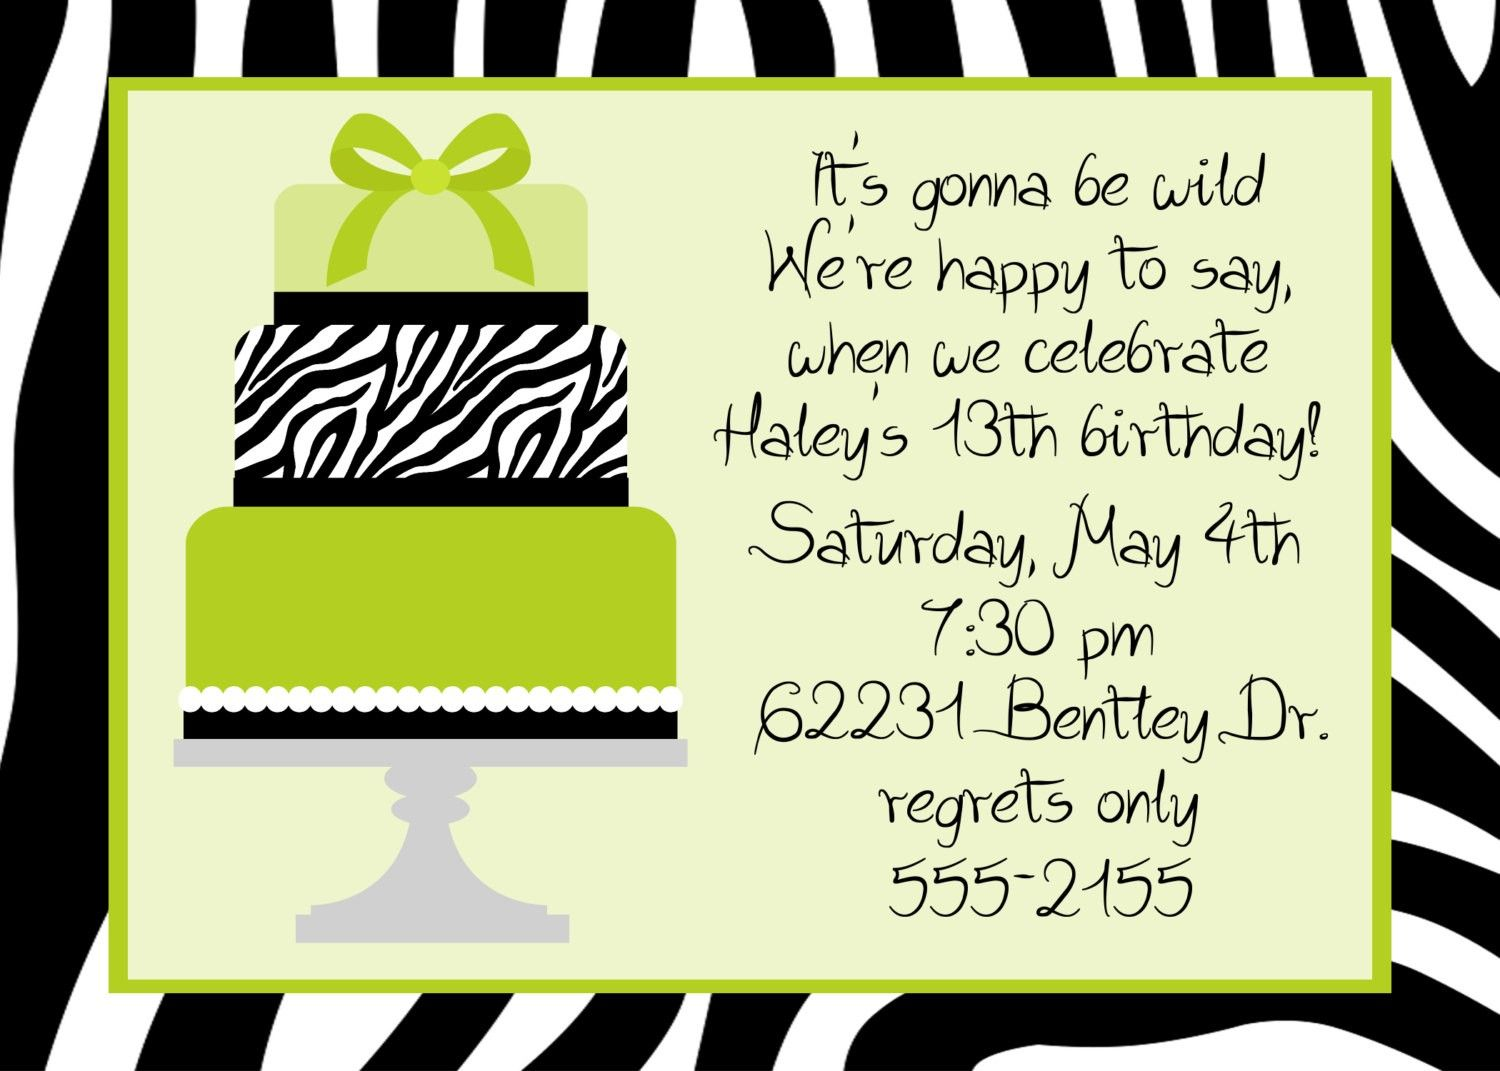 39th birthday party invitation wording ; a06cc30278dcf2a81d37c565e75be550